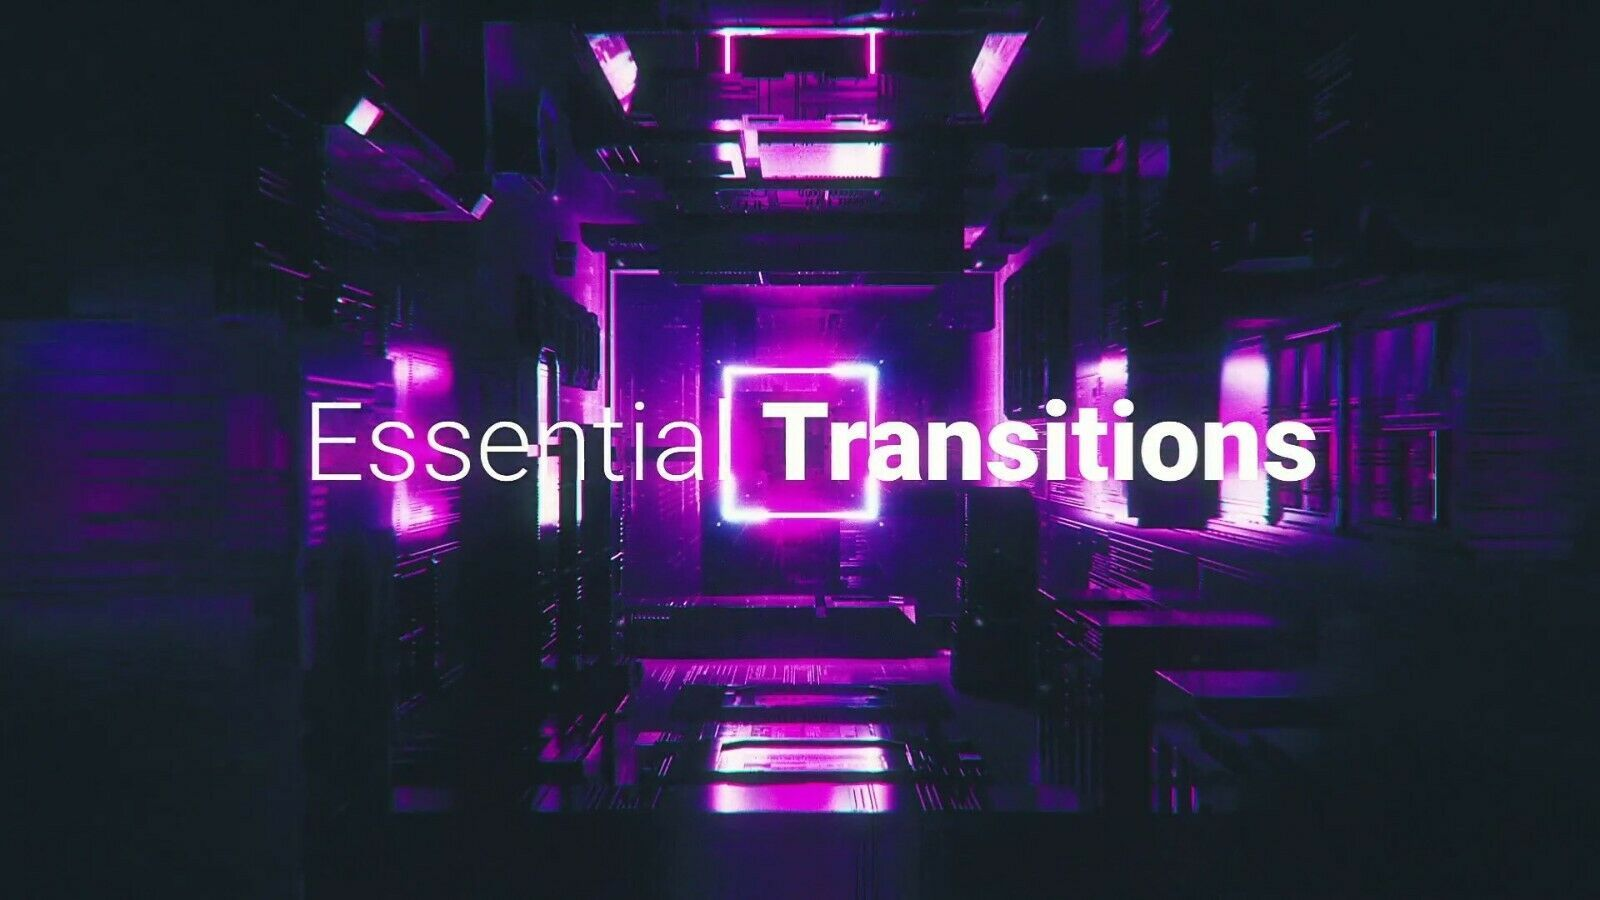 1400 Essential Transitions For After Effects! Titles